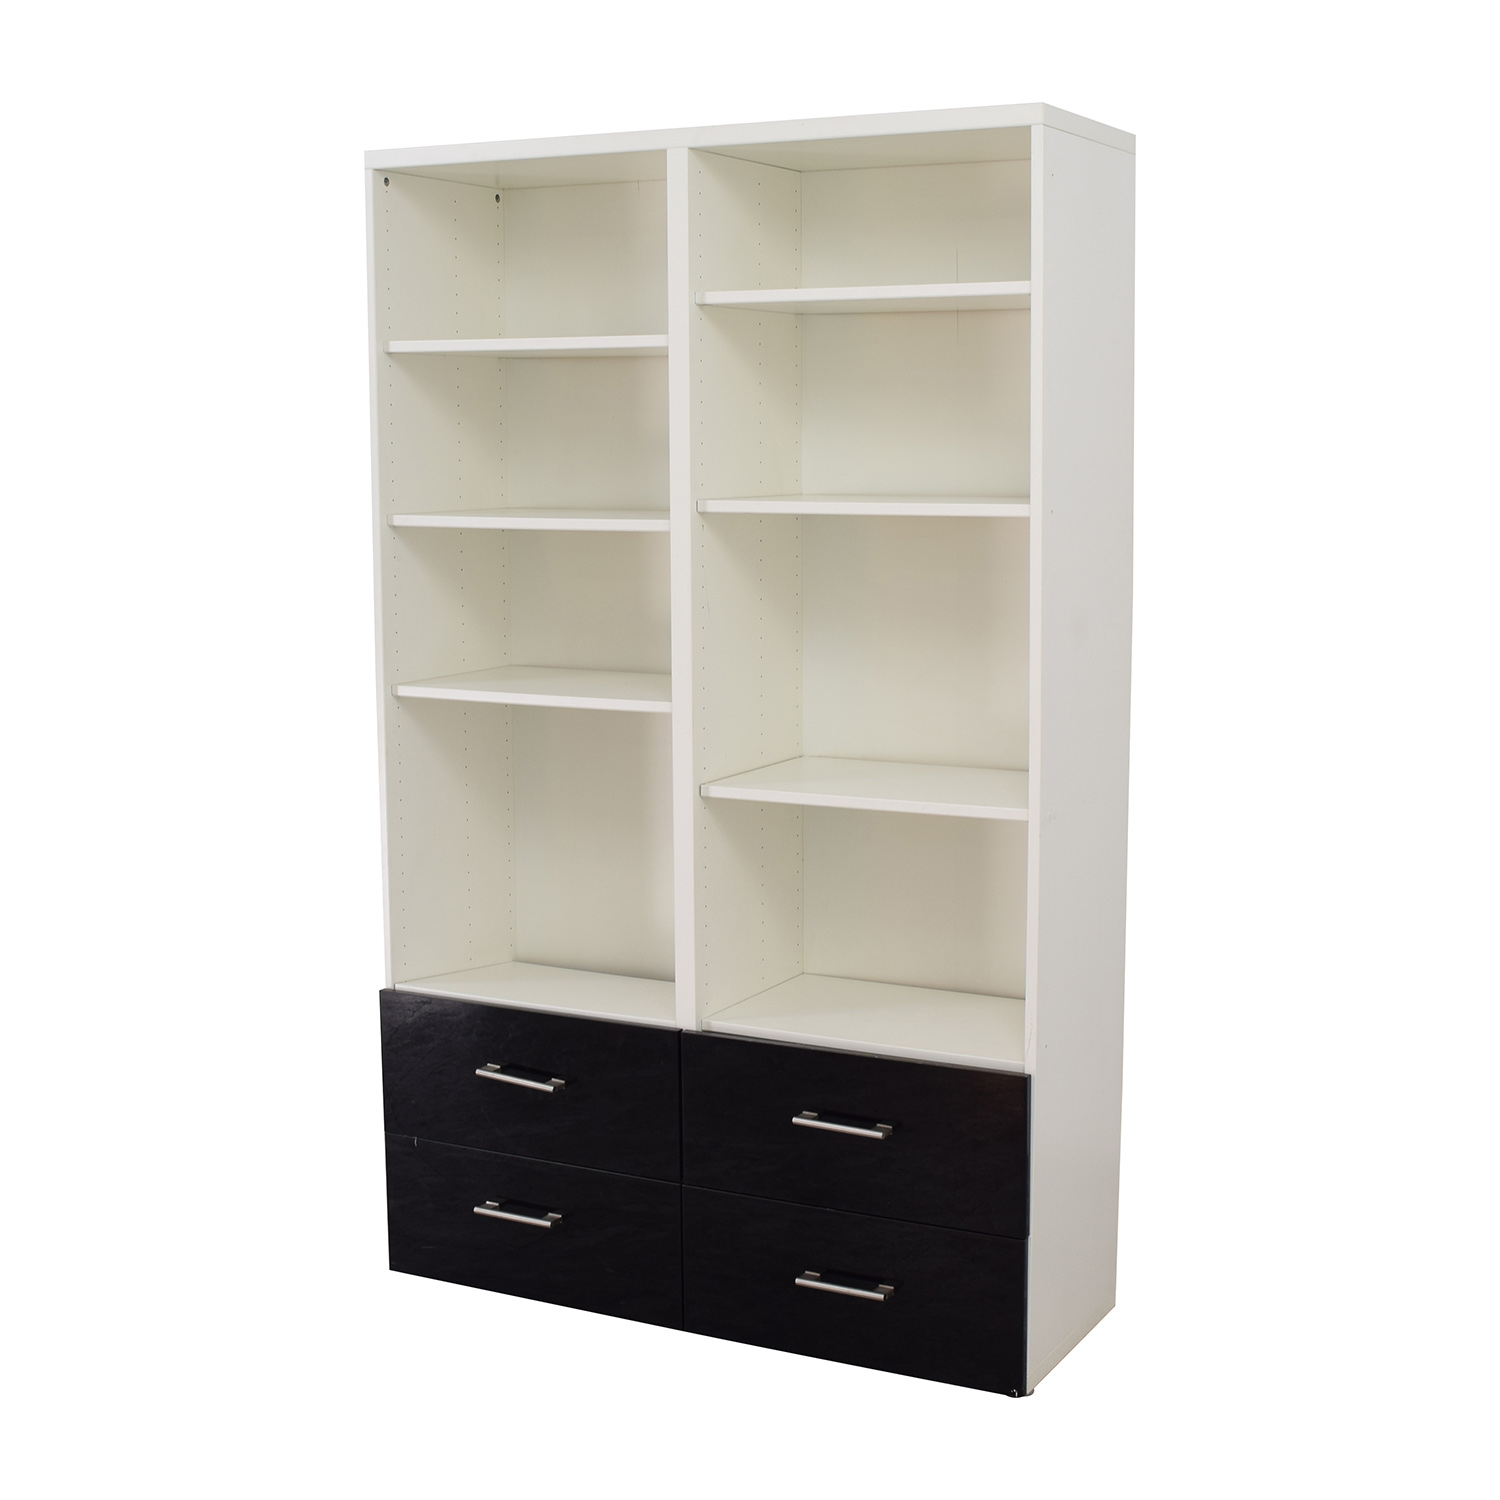 78 off ikea ikea double shelf and drawer set storage. Black Bedroom Furniture Sets. Home Design Ideas